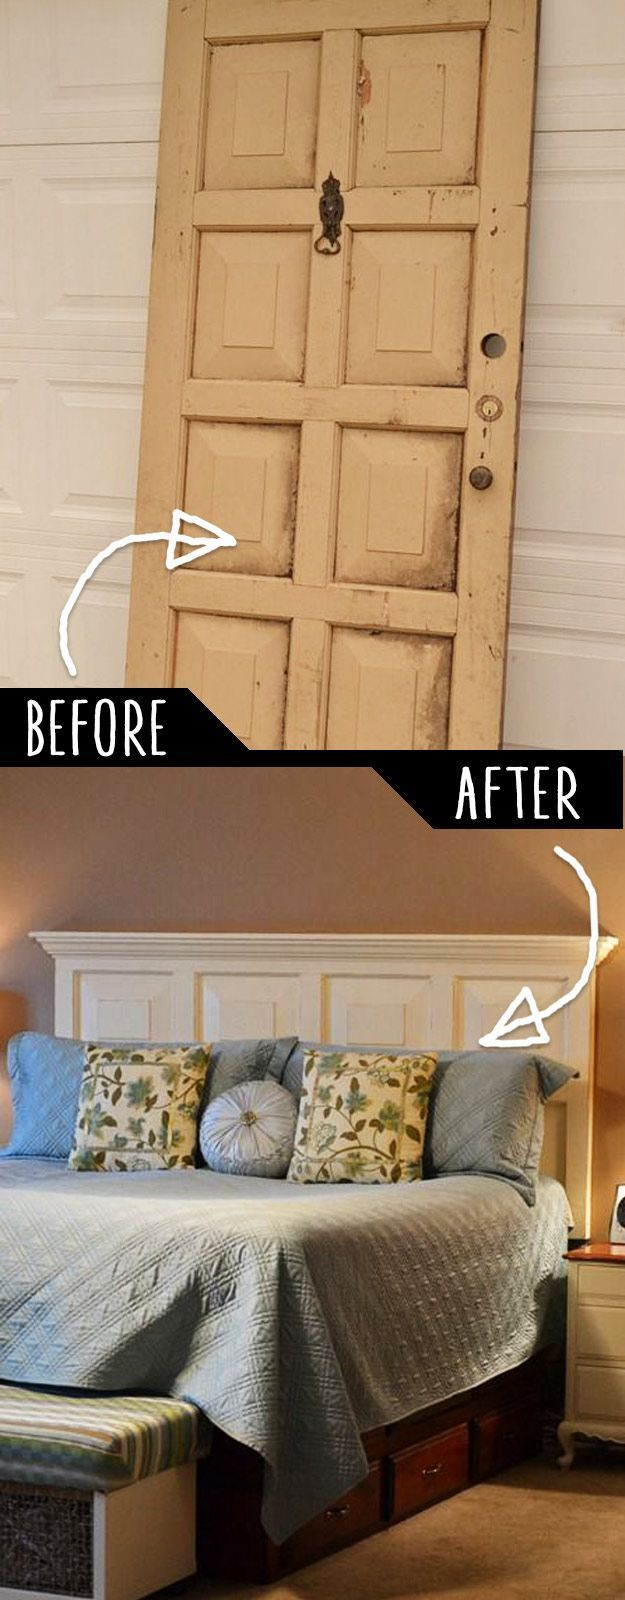 DIY Furniture Hacks | Door Headboard | Cool Ideas for Creative Do It Yourself Furniture Made From Things You Might Not Expect